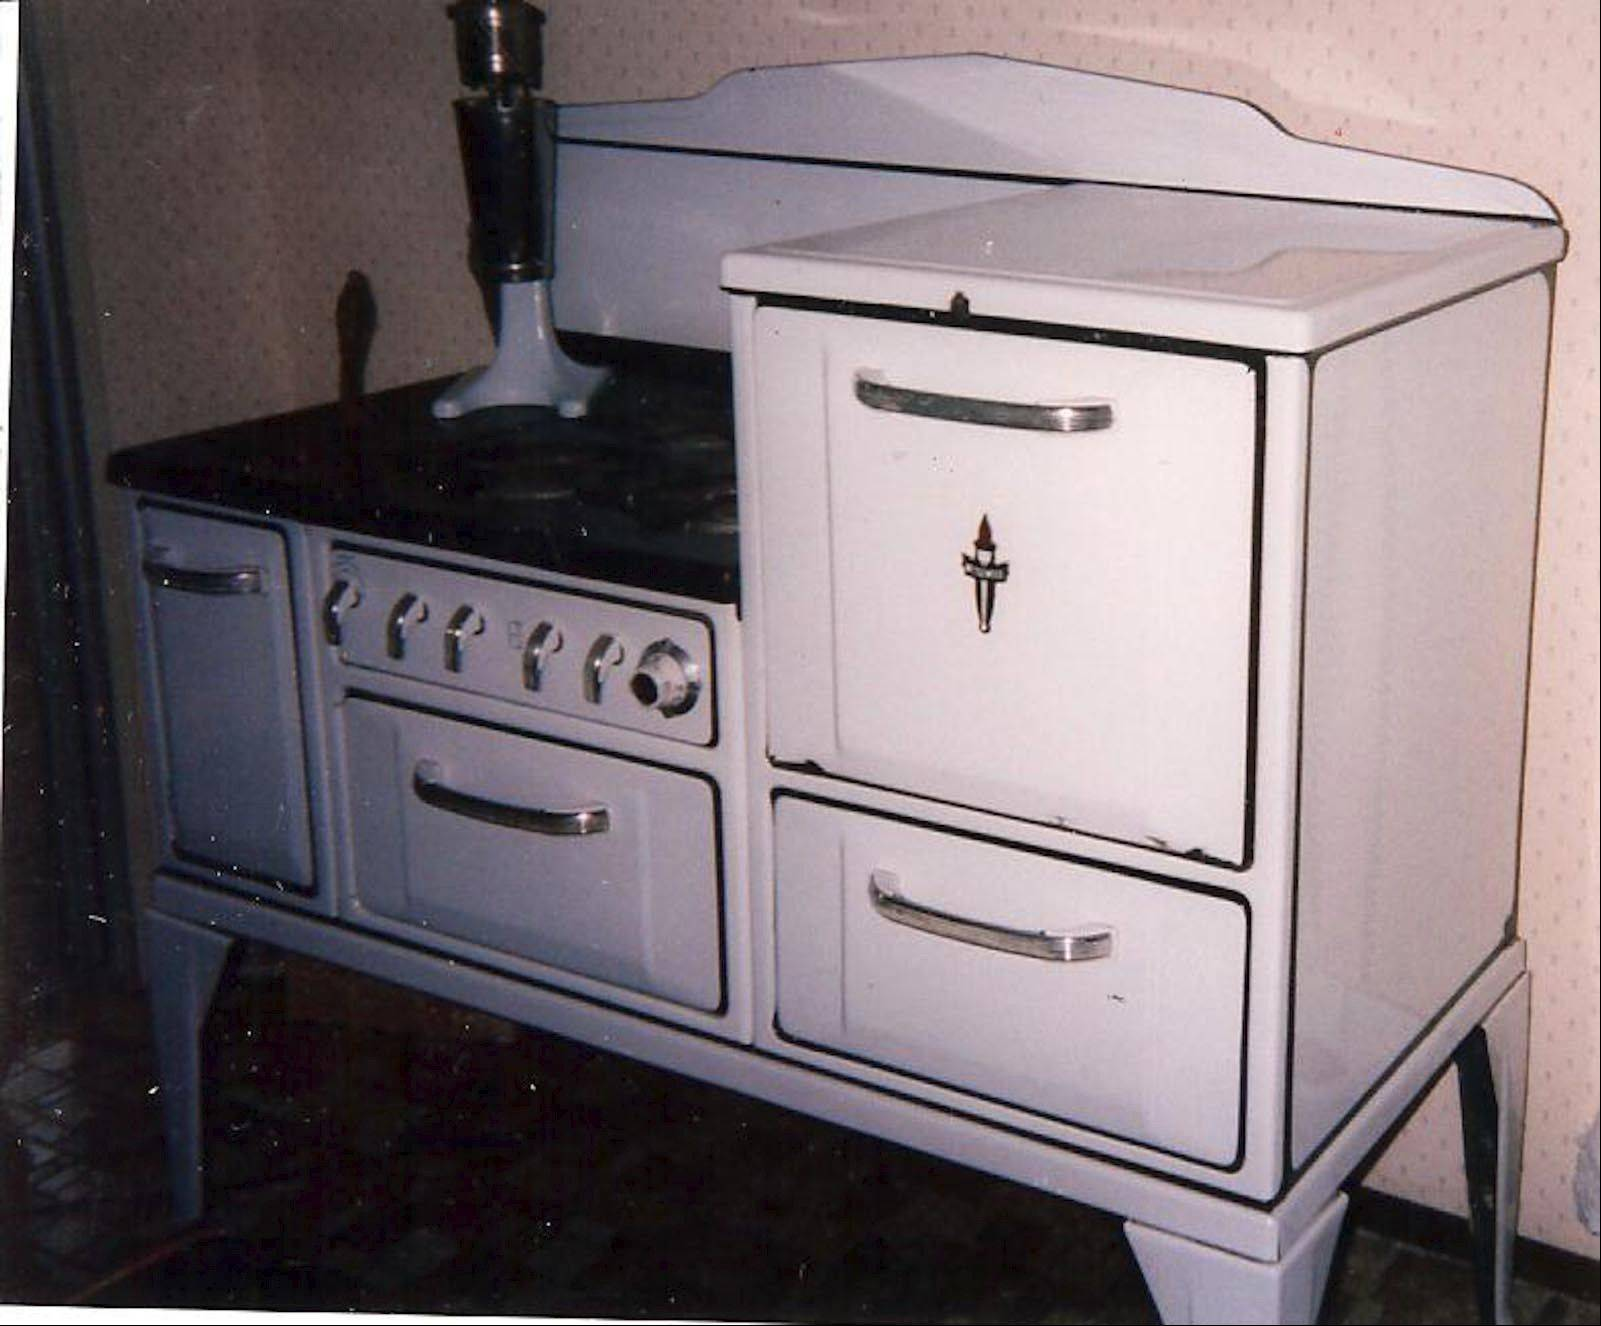 In some markets this Wedgewood stove from the 1920s is still hot.